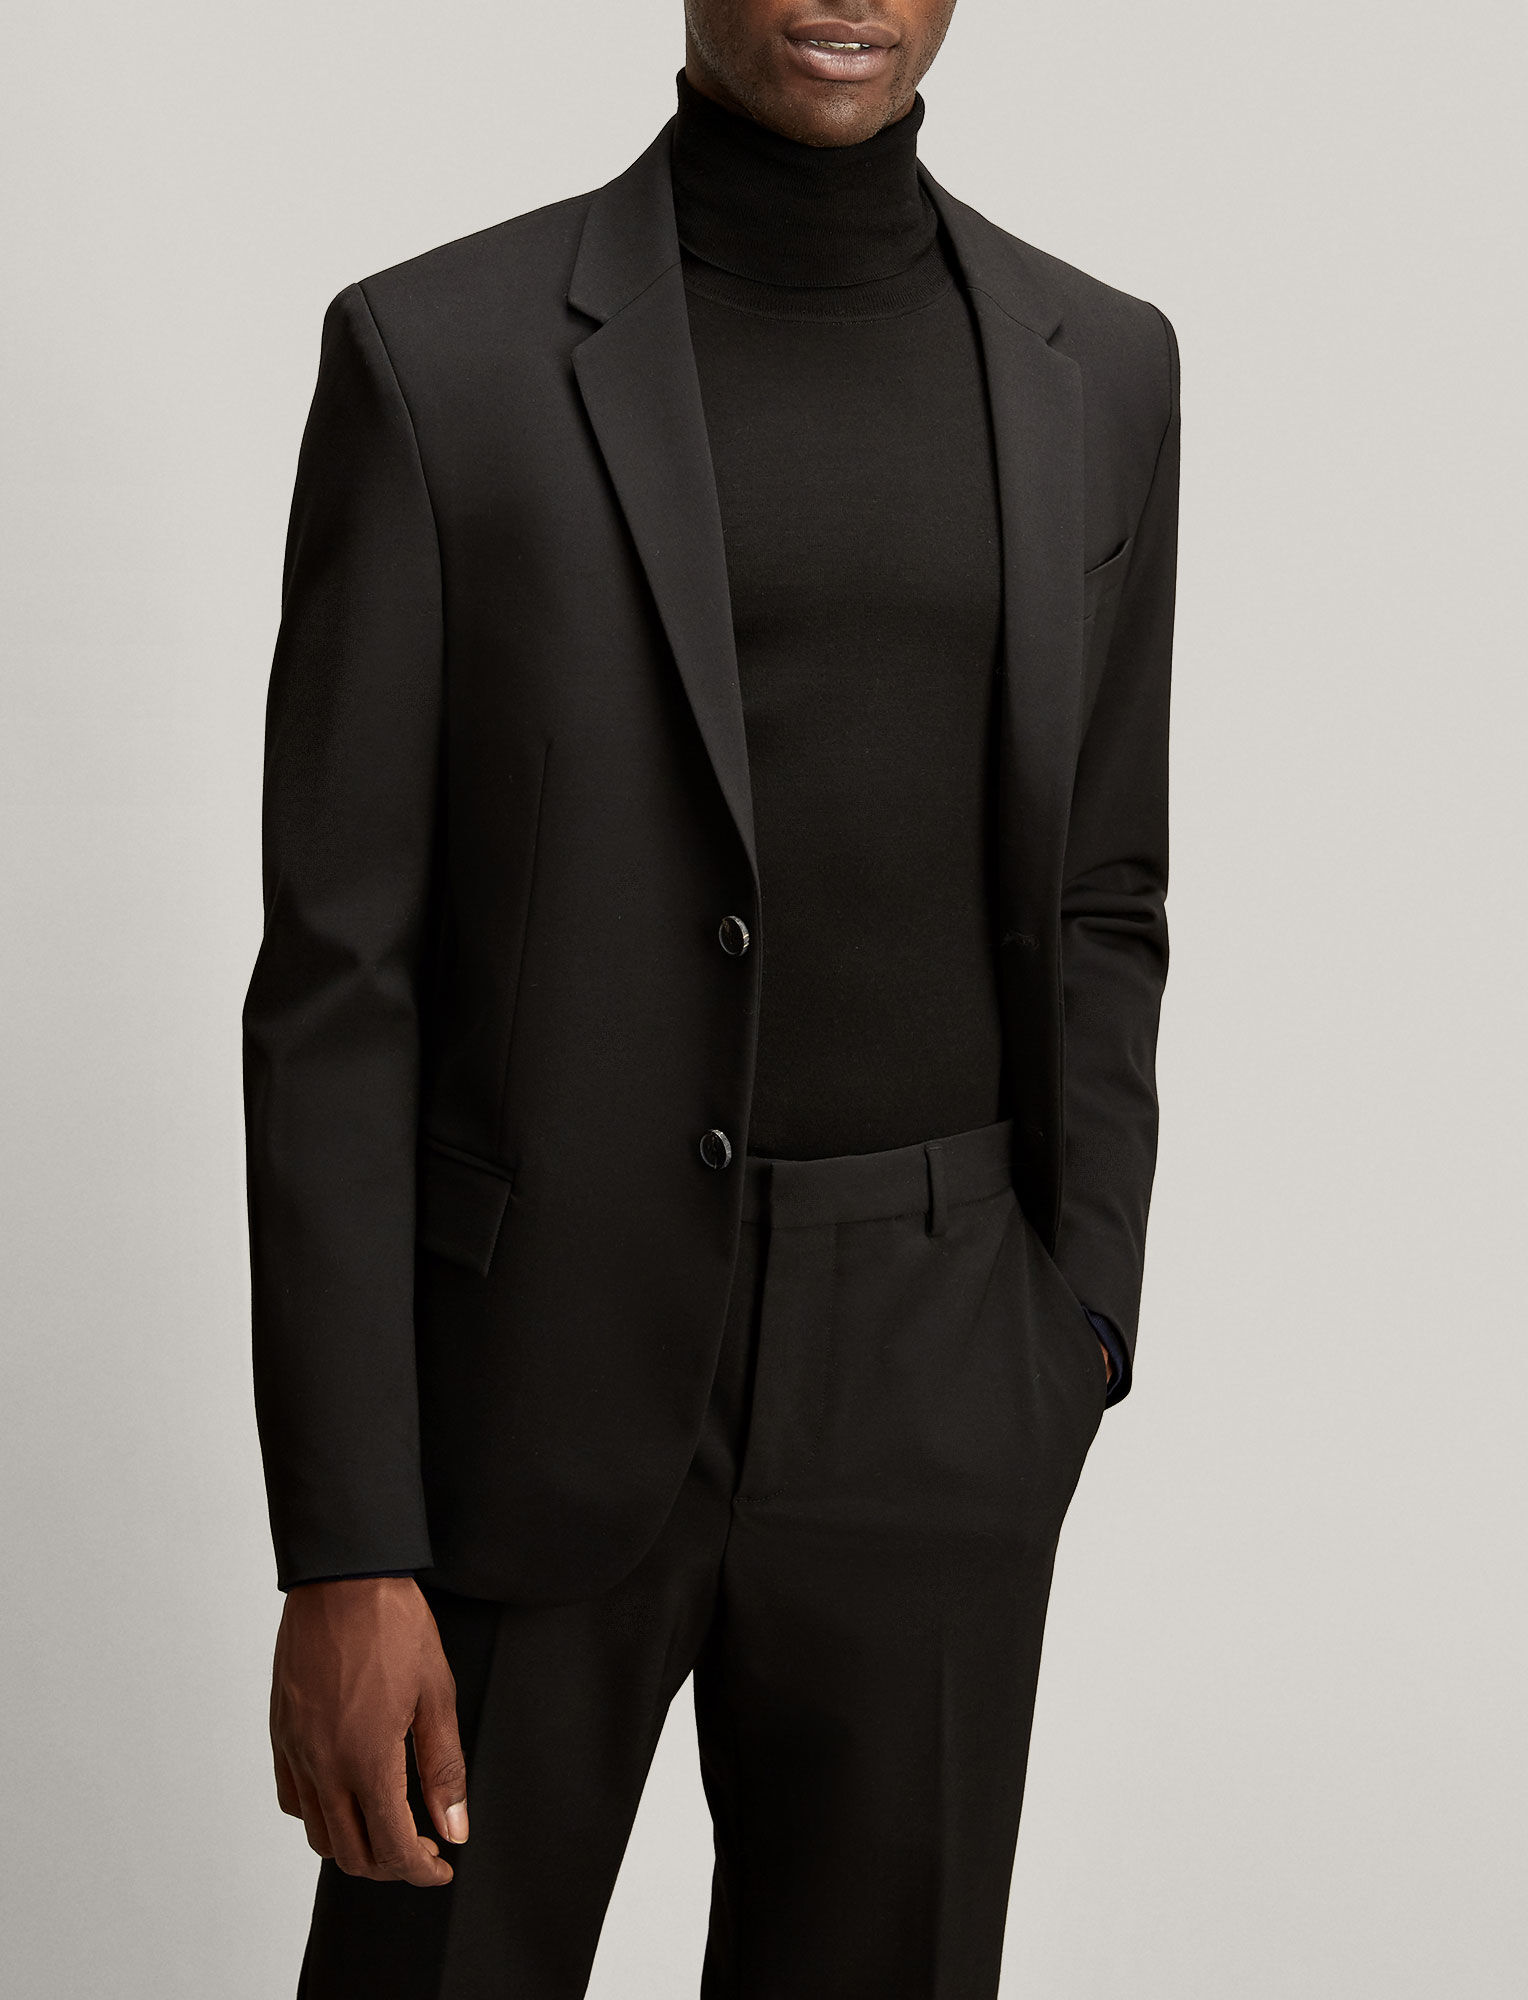 Joseph, Veste Reading en laine techno stretch, in BLACK